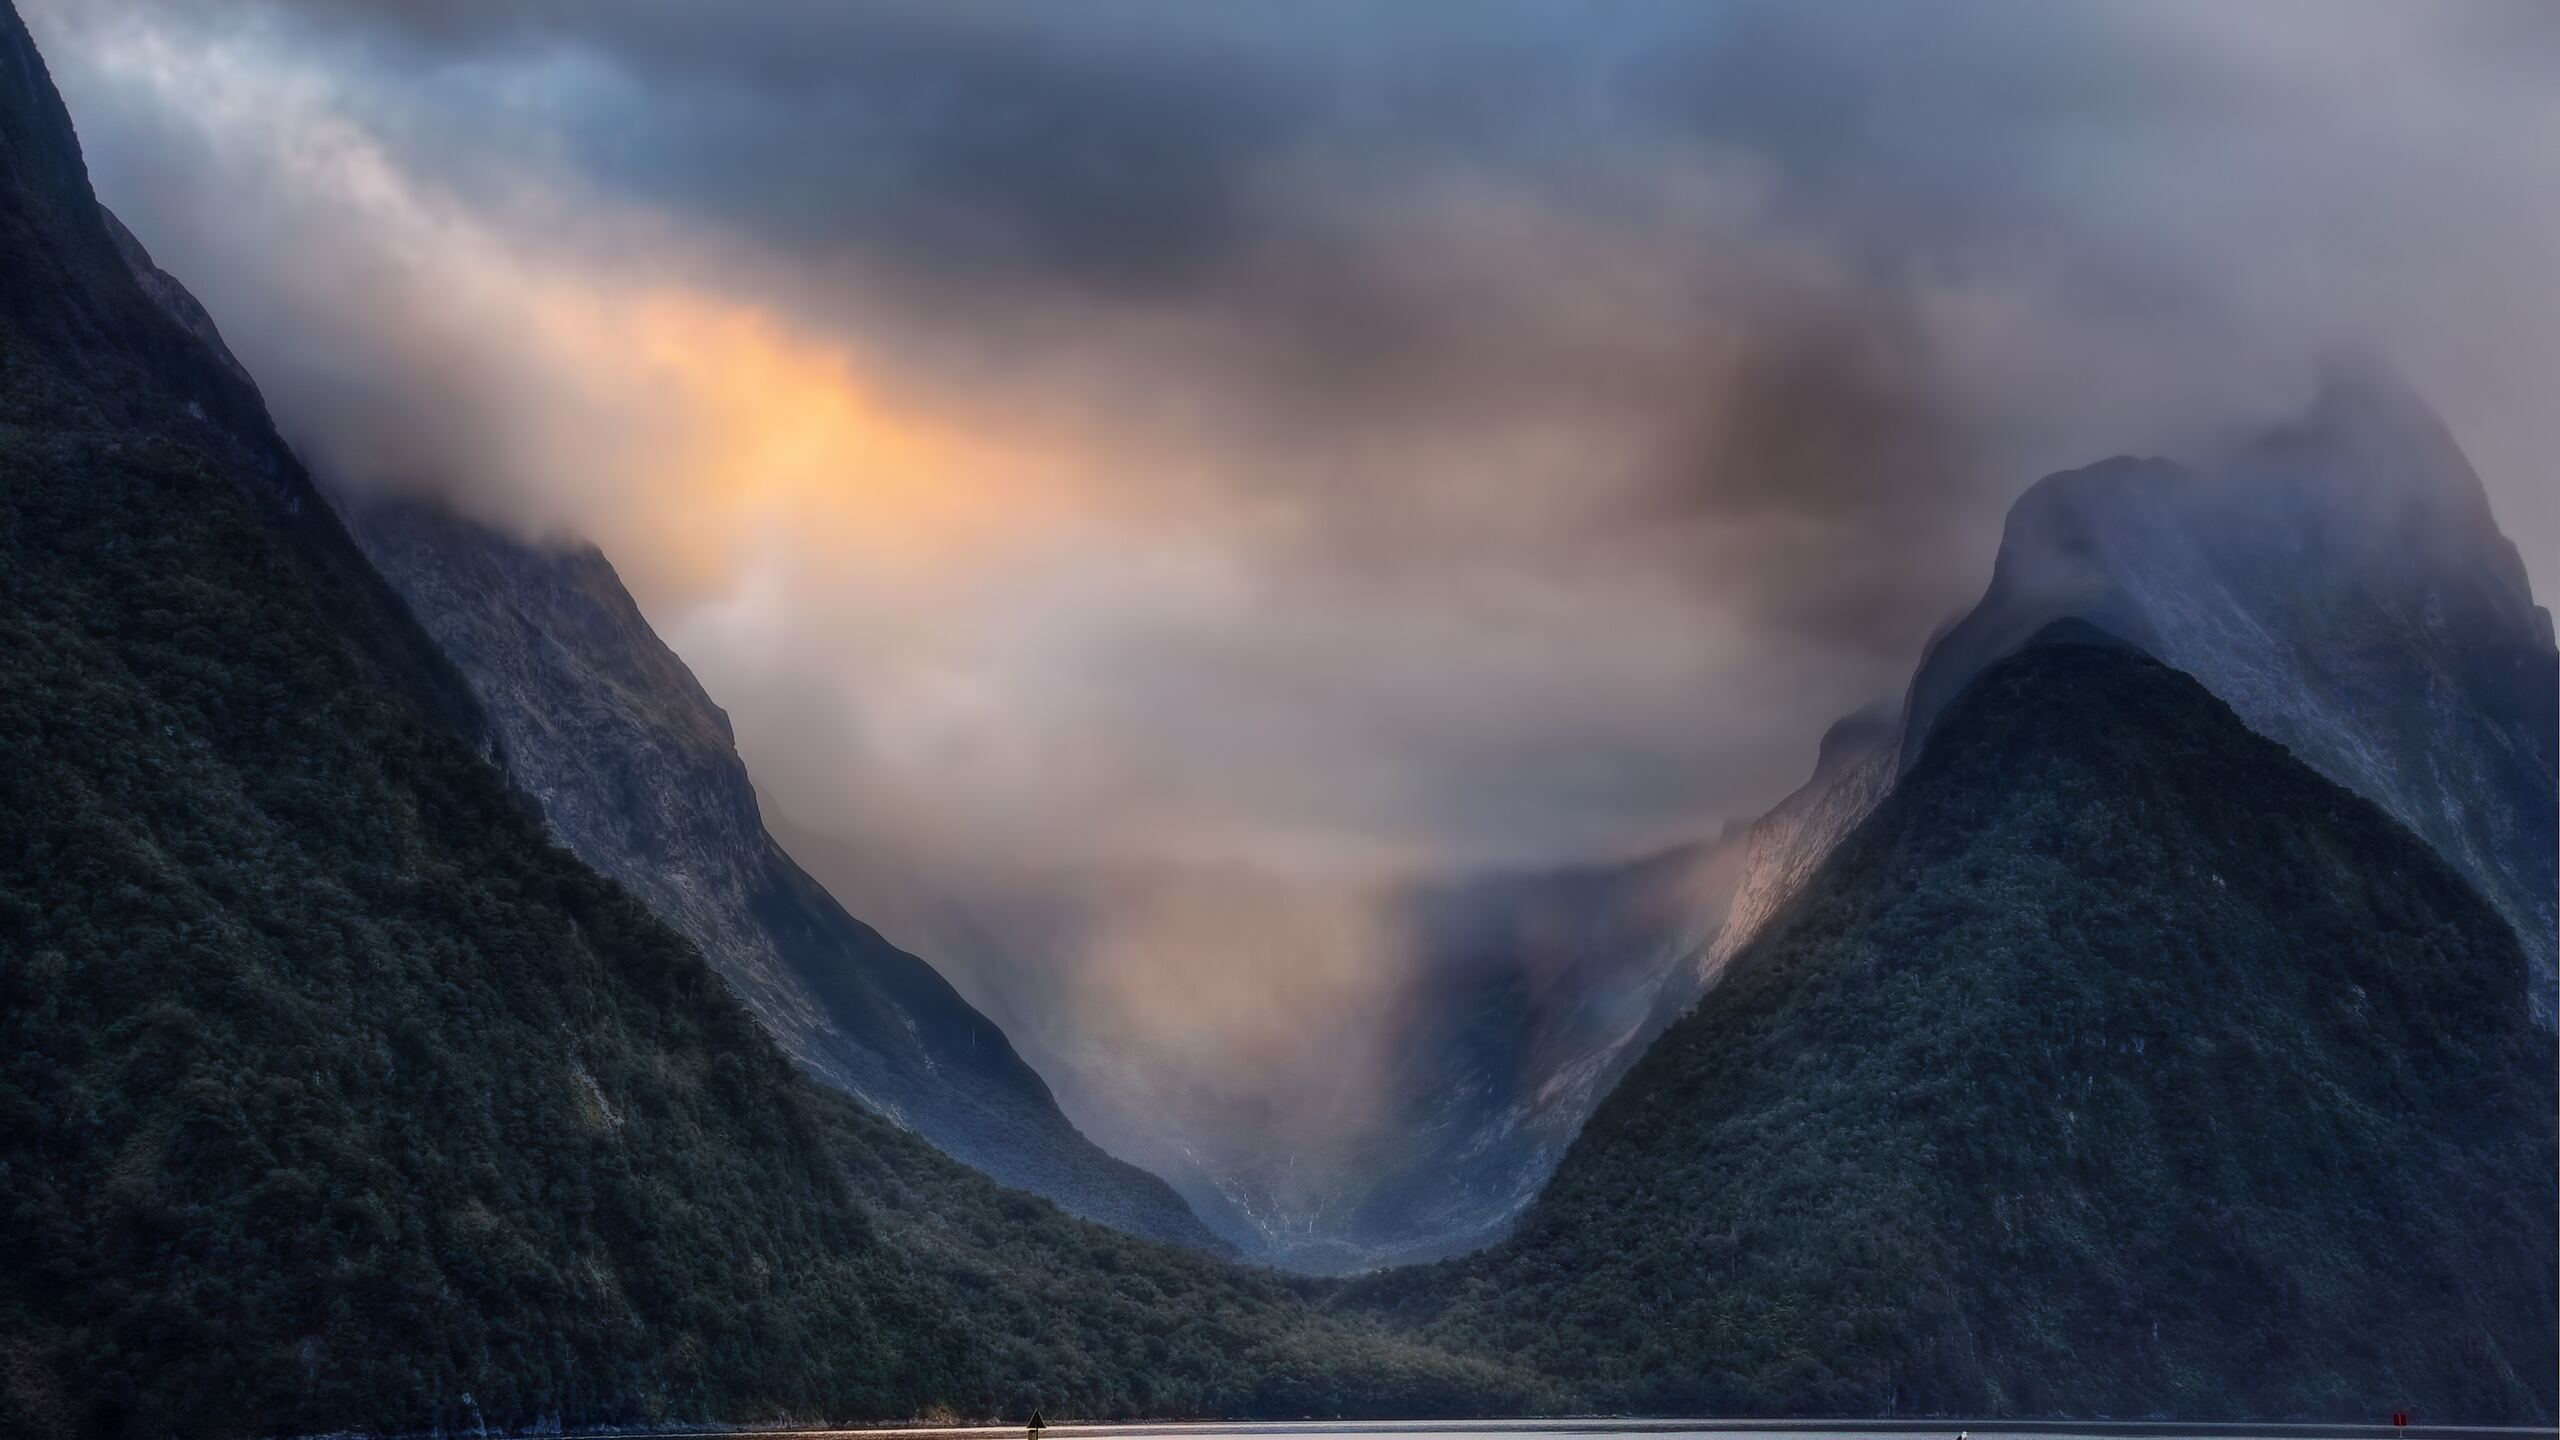 2560x1440 Valley Milford Sound In New Zealand 1440p Resolution Hd 4k Wallpapers Images Backgrounds Photos And Pictures